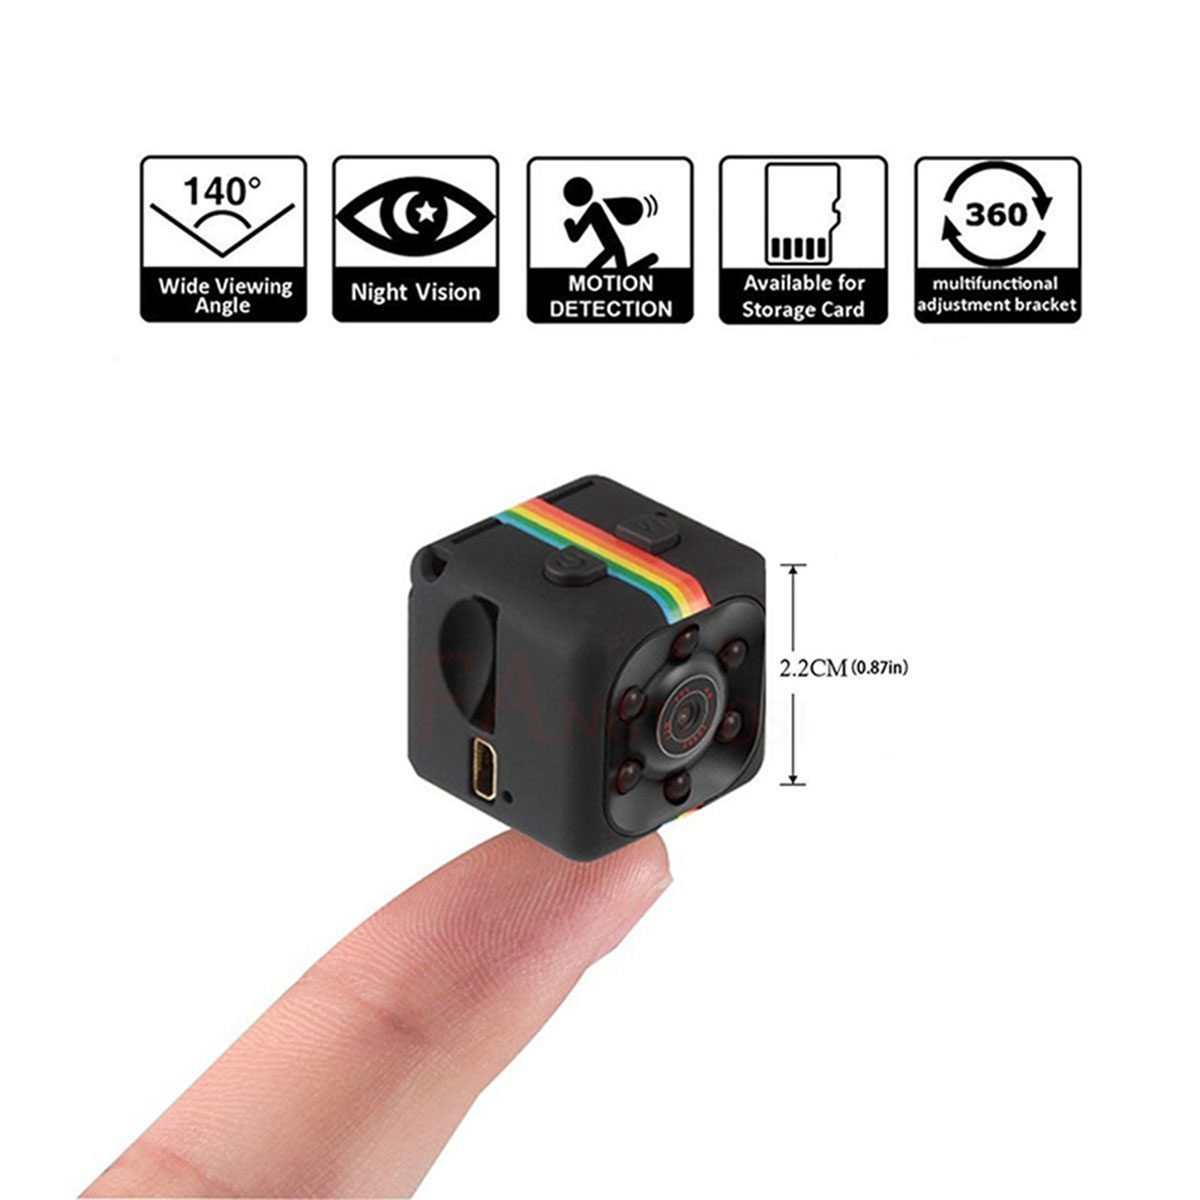 Original Mini Cam WIFI Camera SQ11 FULL HD 1080P Night Vision Waterproof Shell CMOS Sensor Recorder Camcorder Support TF Card-in Mini Camcorders from Consumer Electronics